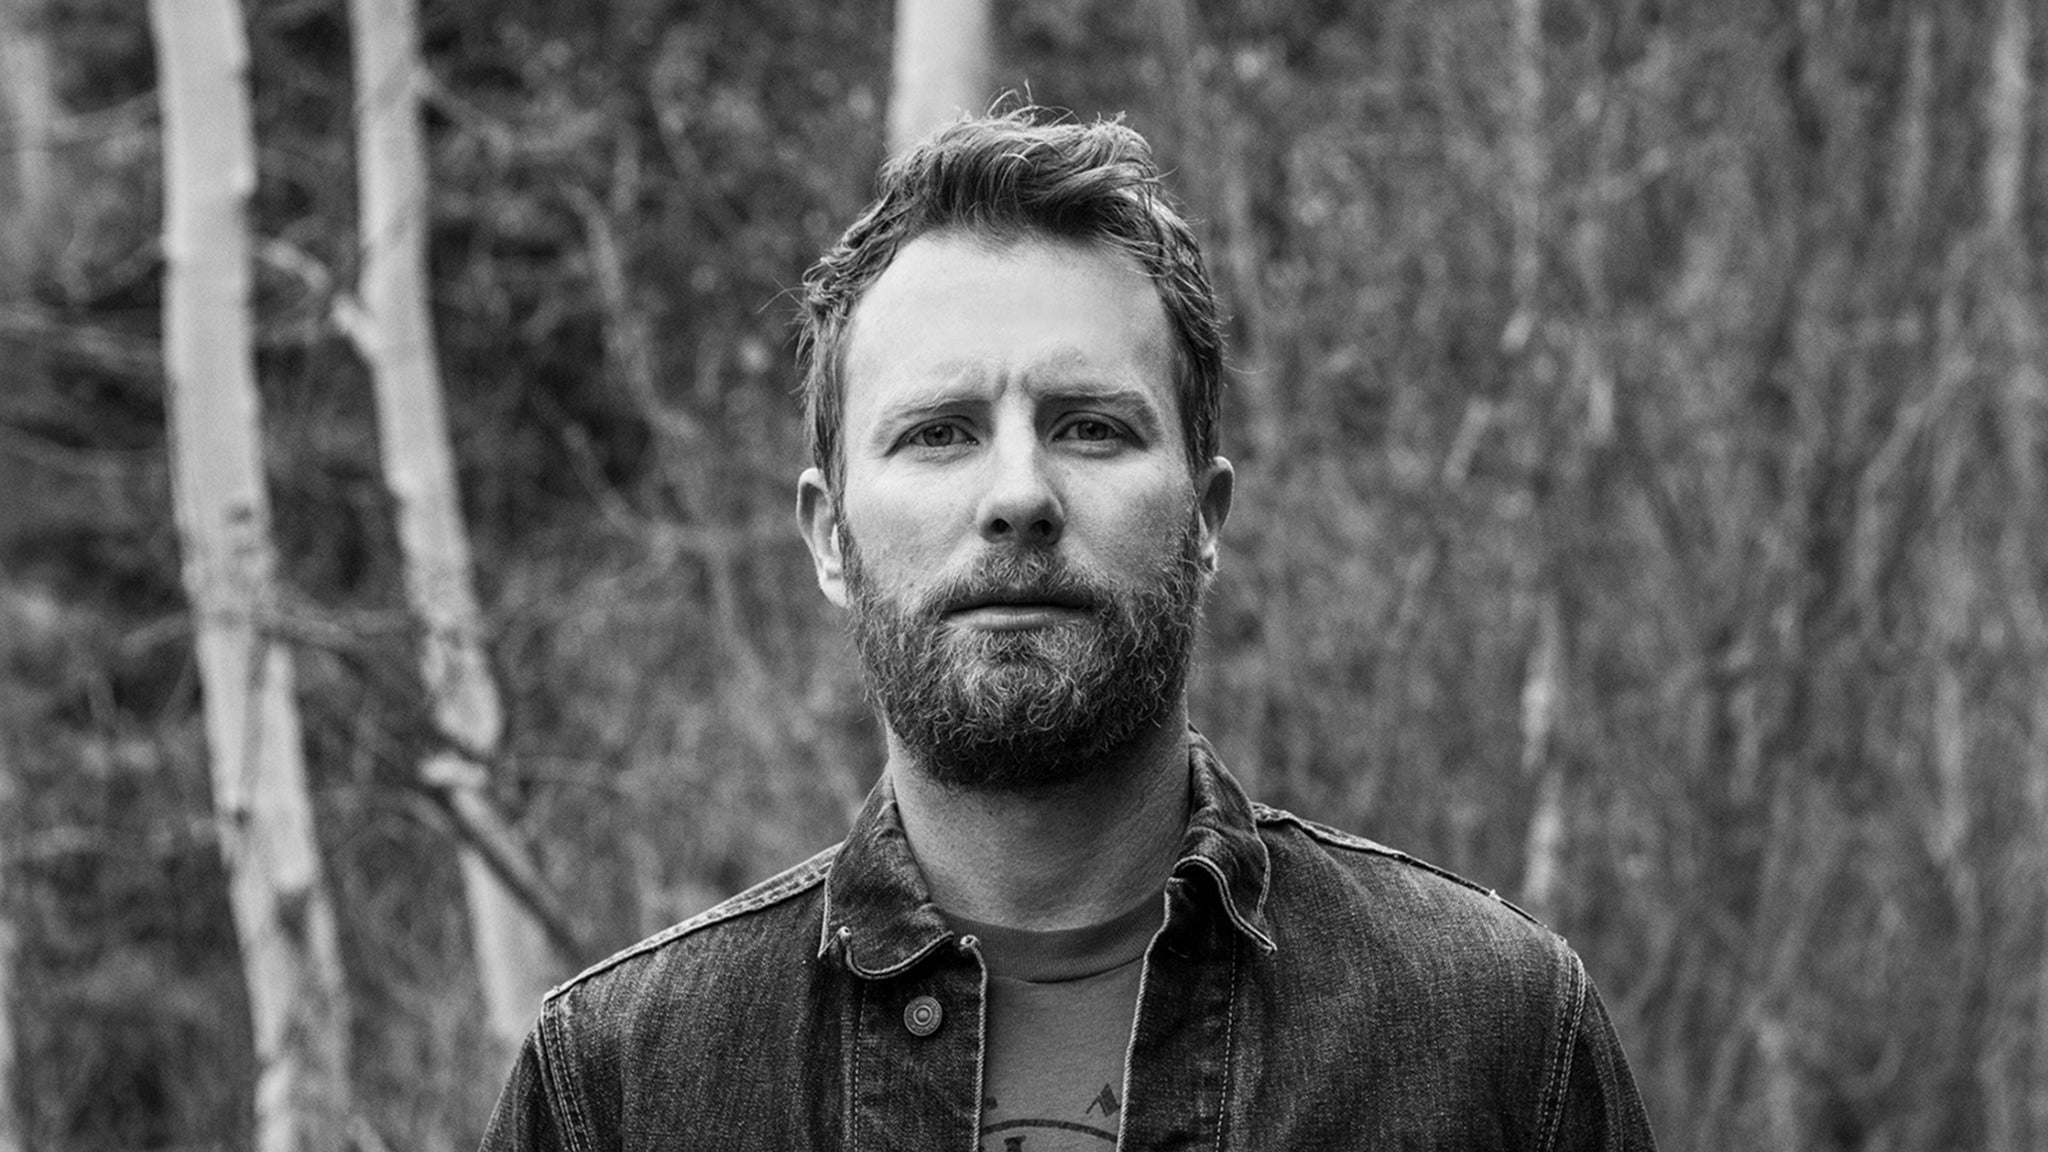 Dierks Bentley: Burning Man Tour